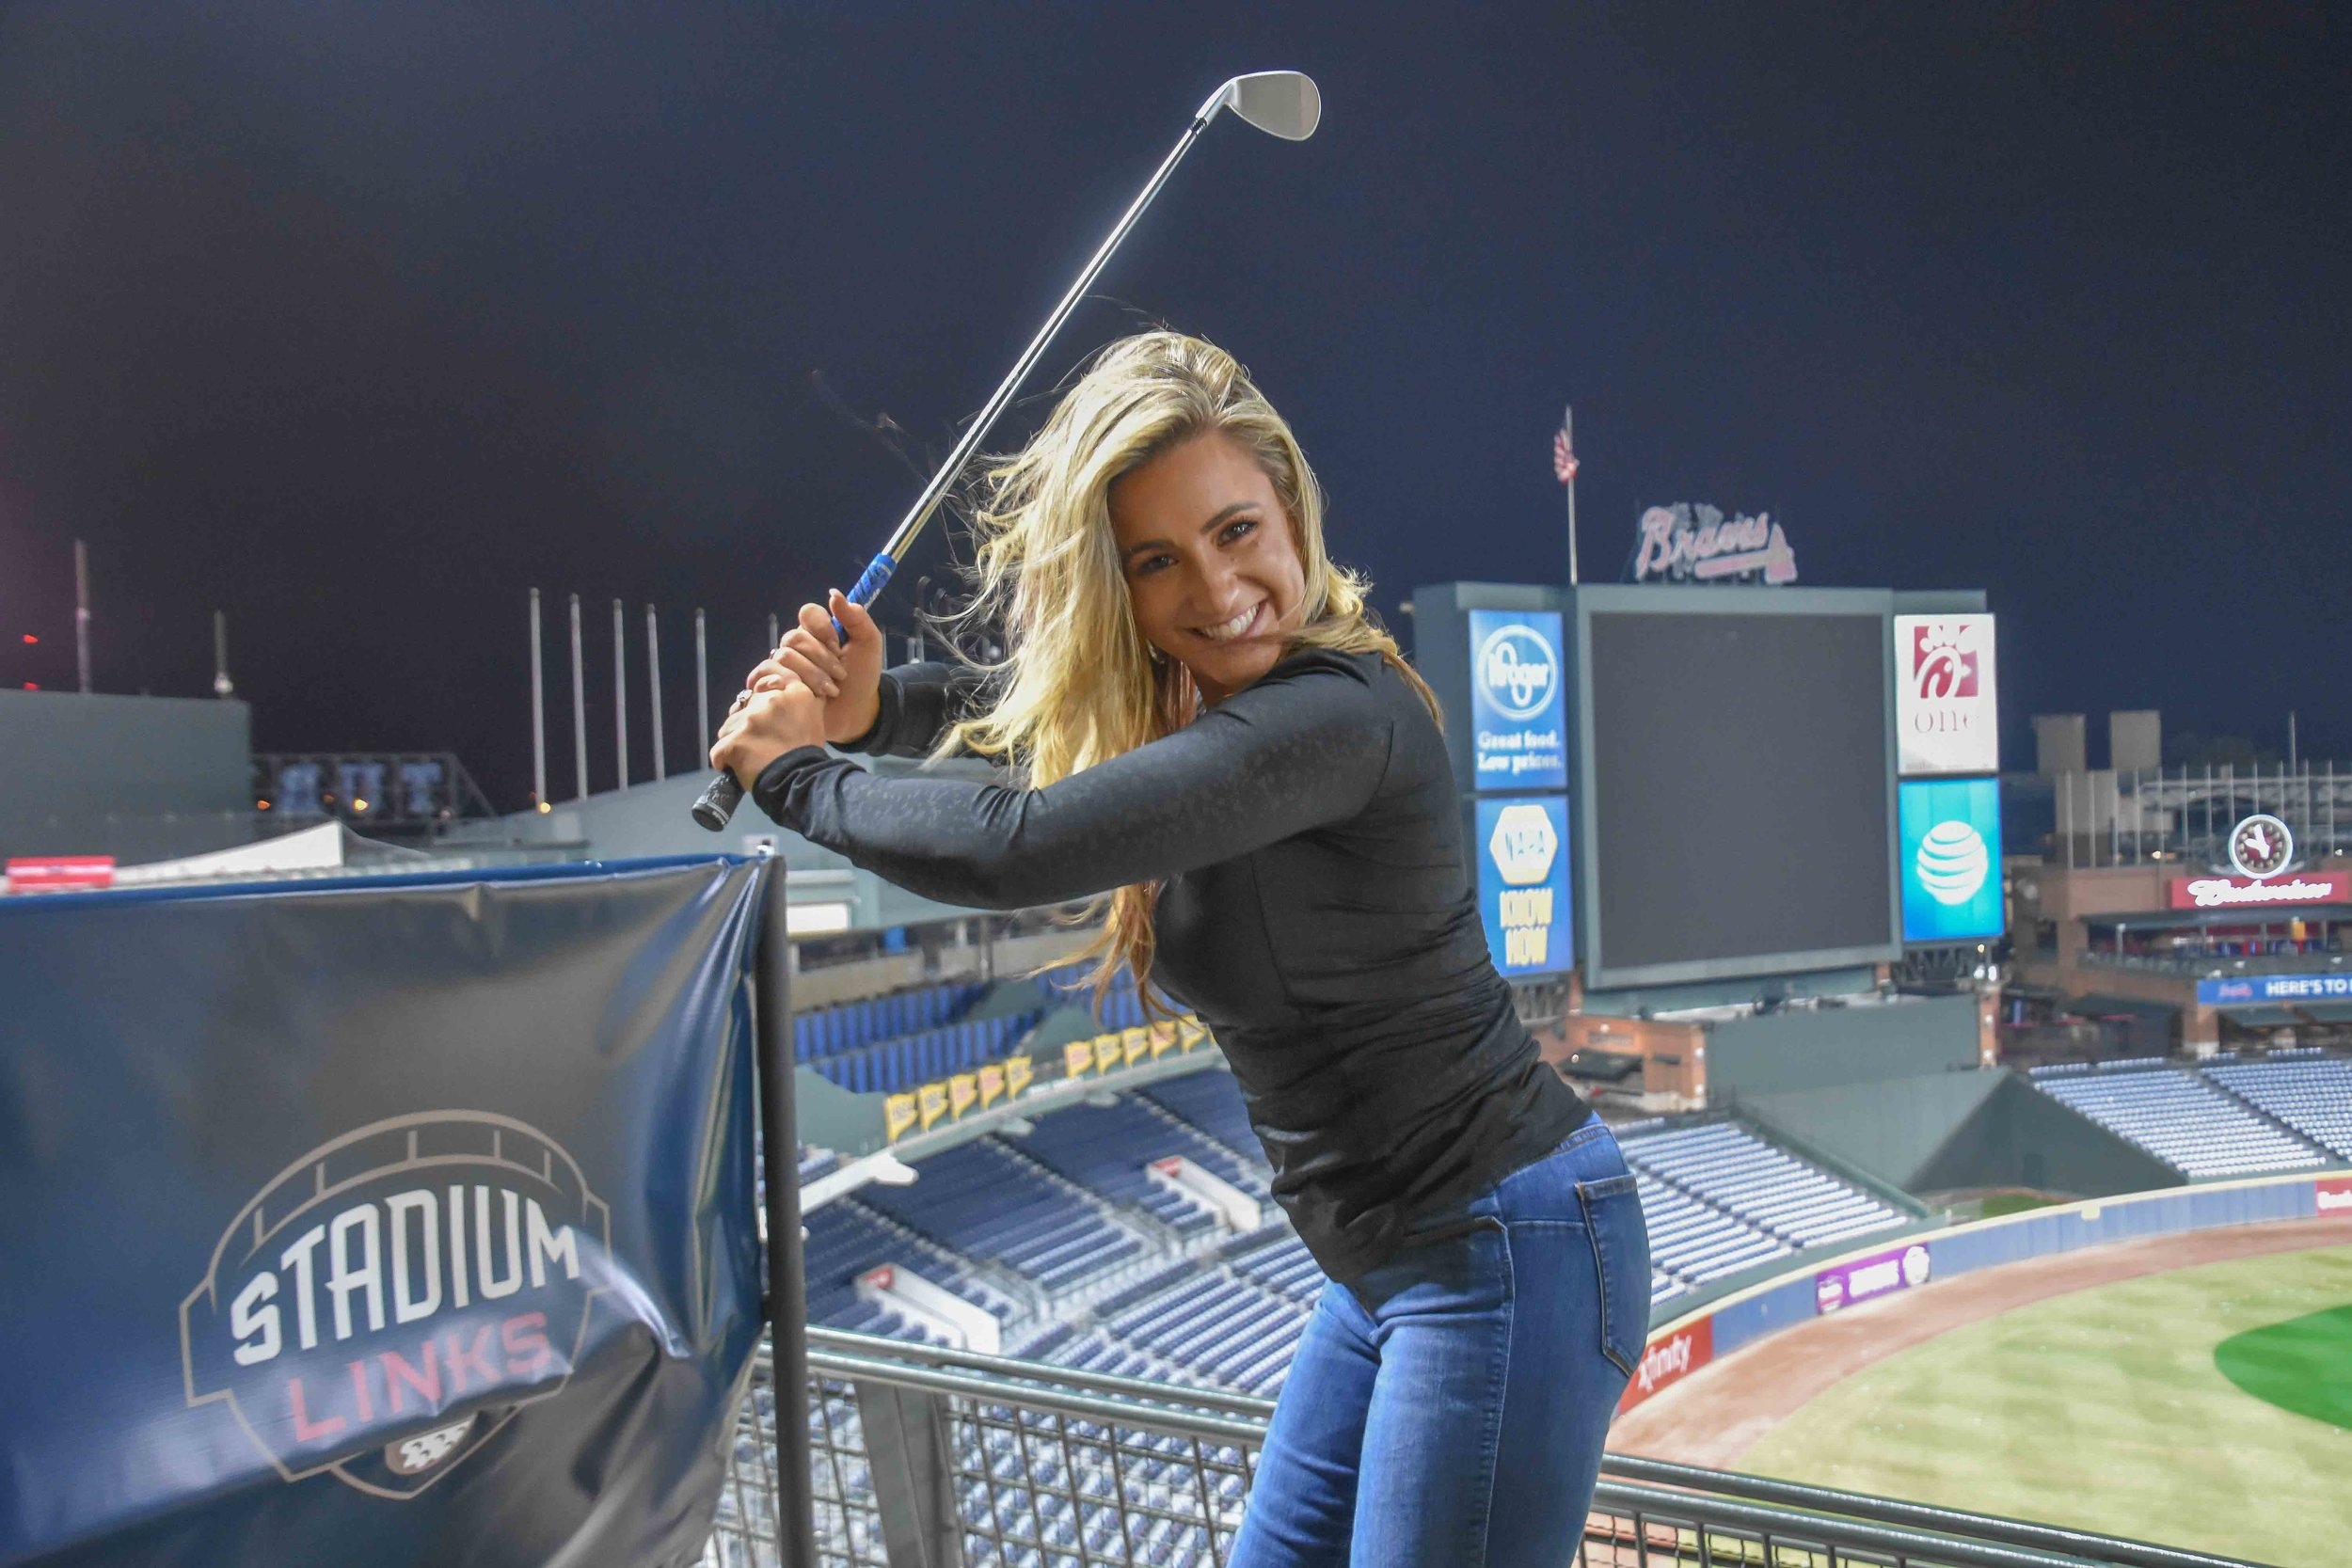 Chelsea Pezzola  mixes up baseball and golf, in the classic basegolf pose.